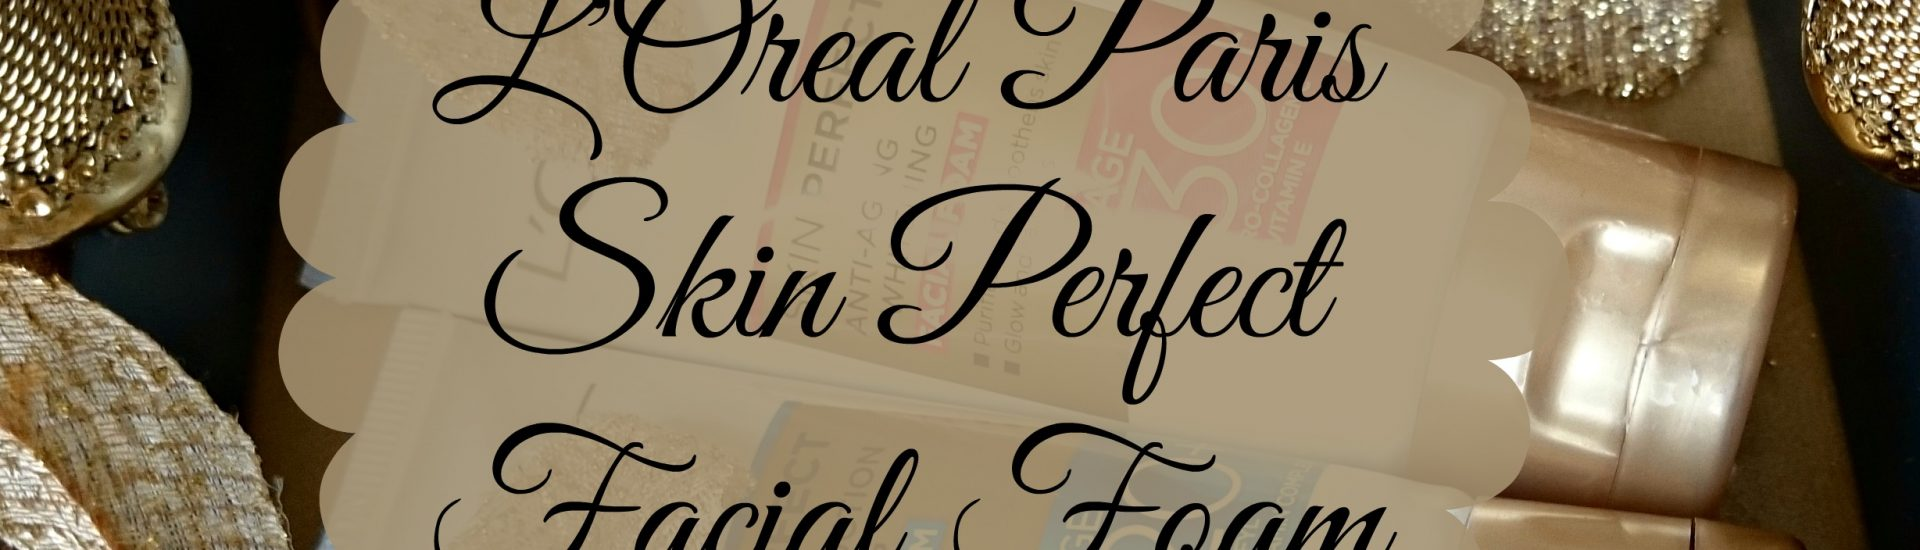 L'Oreal Paris Skin Perfect Facial Foam